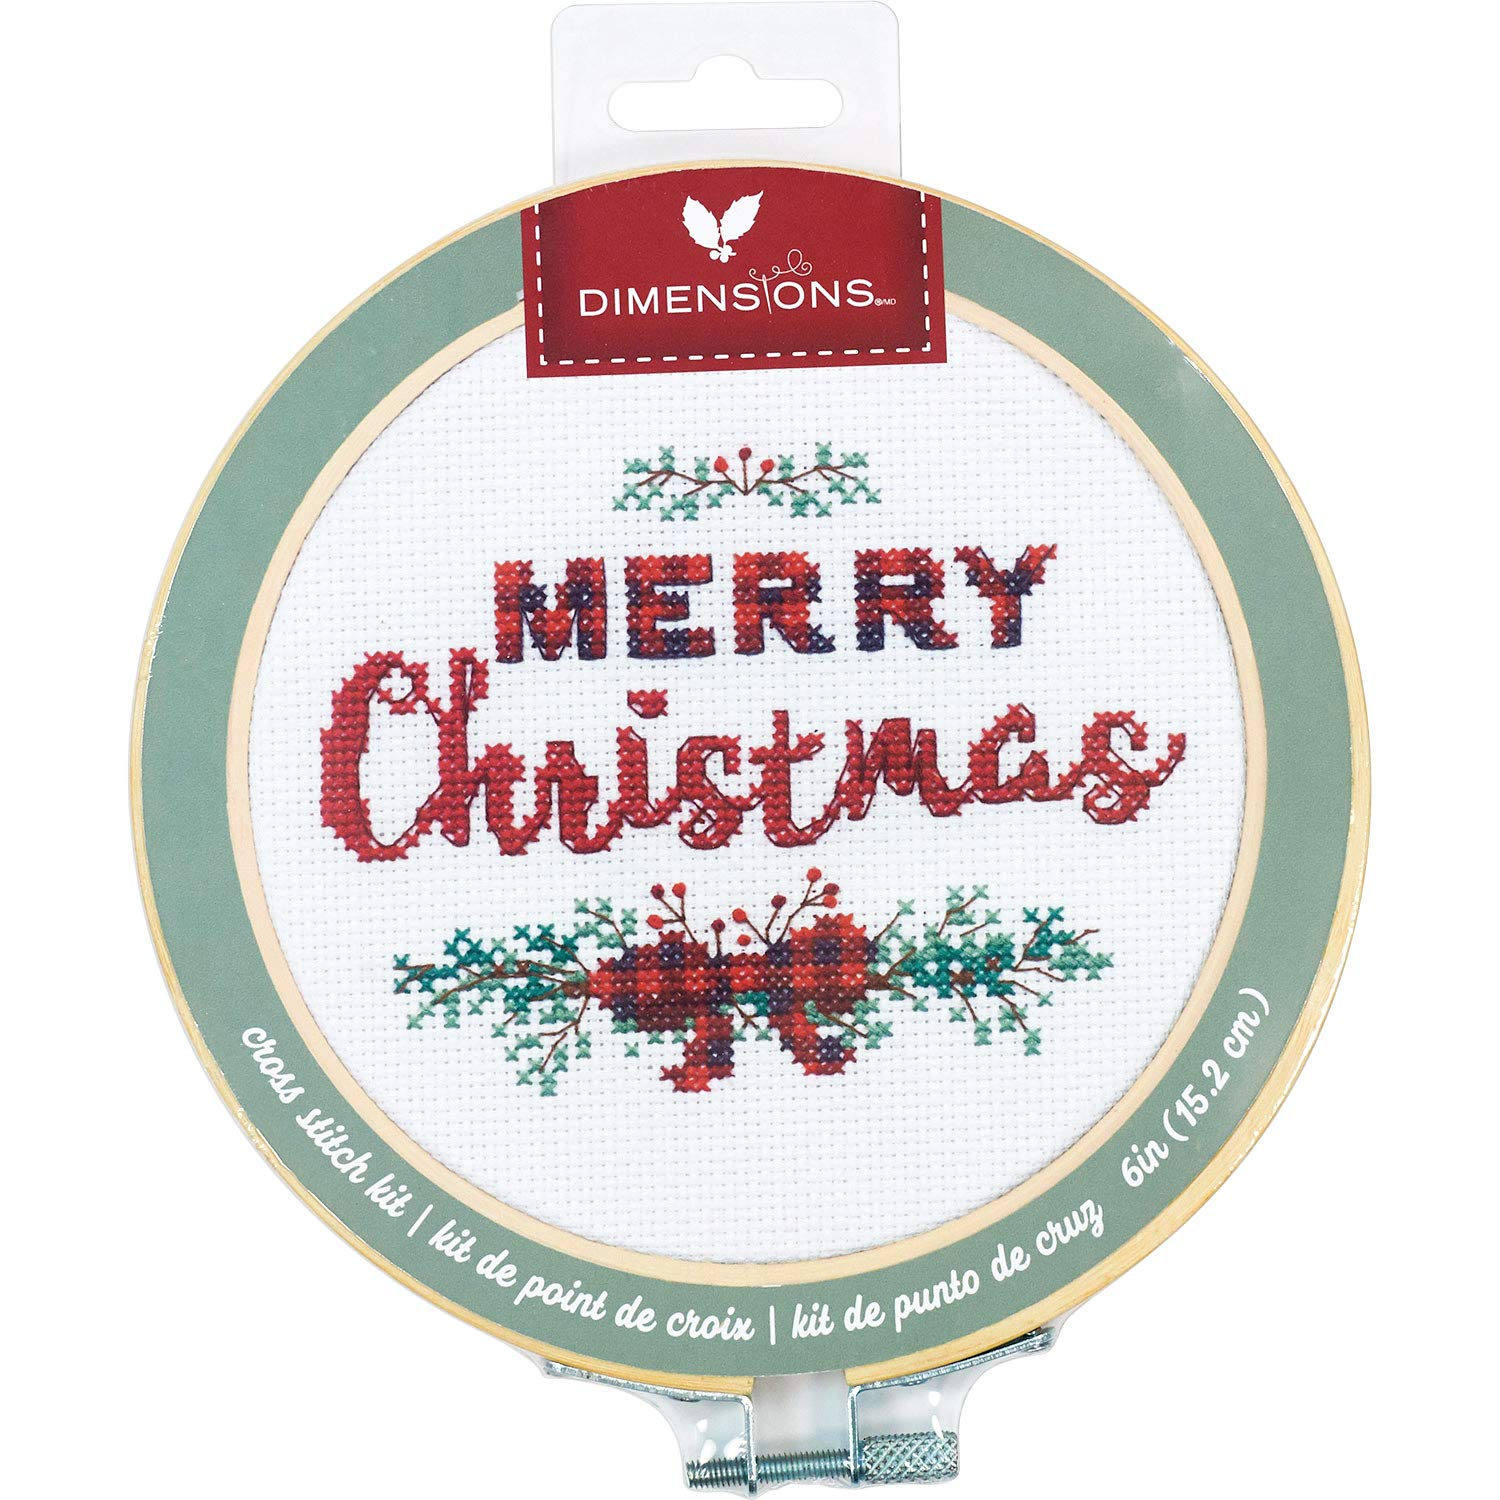 White 14 Count Aida 6 Embroidery Hoop Merry Christmas Cross Stitch Dimensions 72-76043 Kit